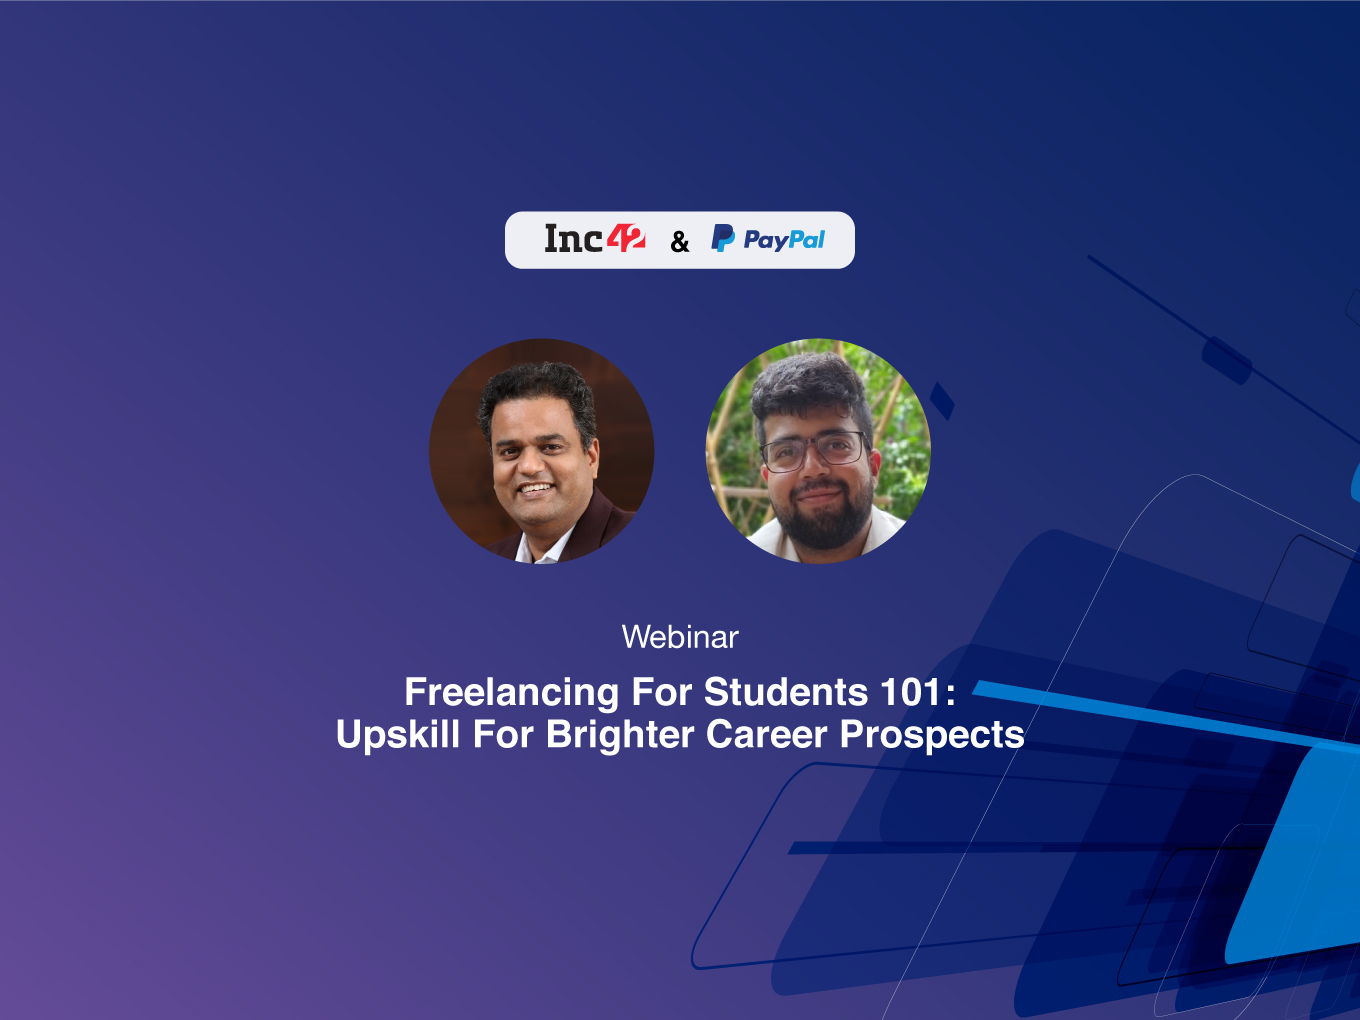 Inc42's Webinar On Freelancing: Helping Students Upskill And Address The Skill Gap